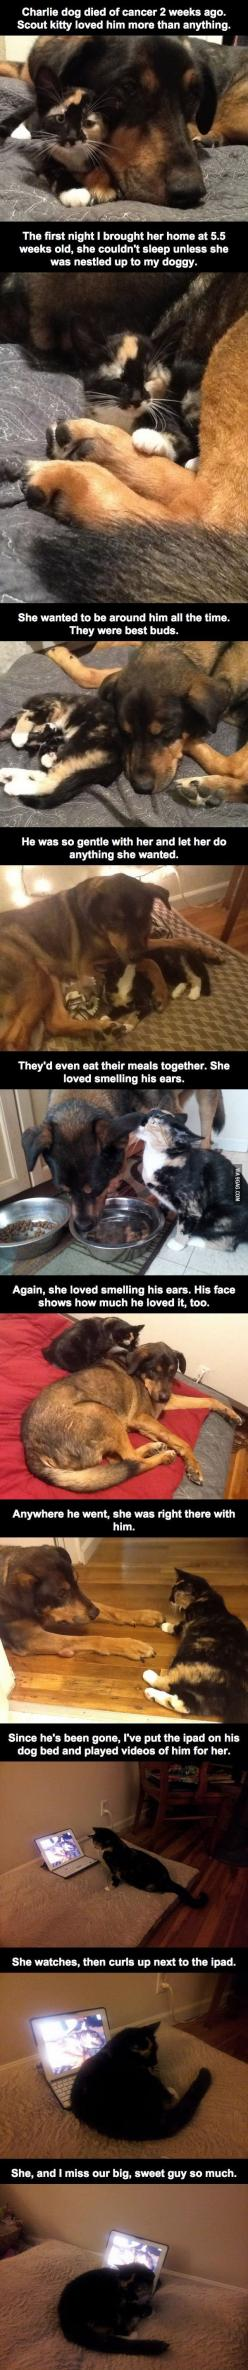 Omg that makes me cry.: Dogs And Cats, Animals ️, Heart Breaks, Kitty Feels, House Cat S, Animal Stories, Cats And Dogs, Cat S Reaction